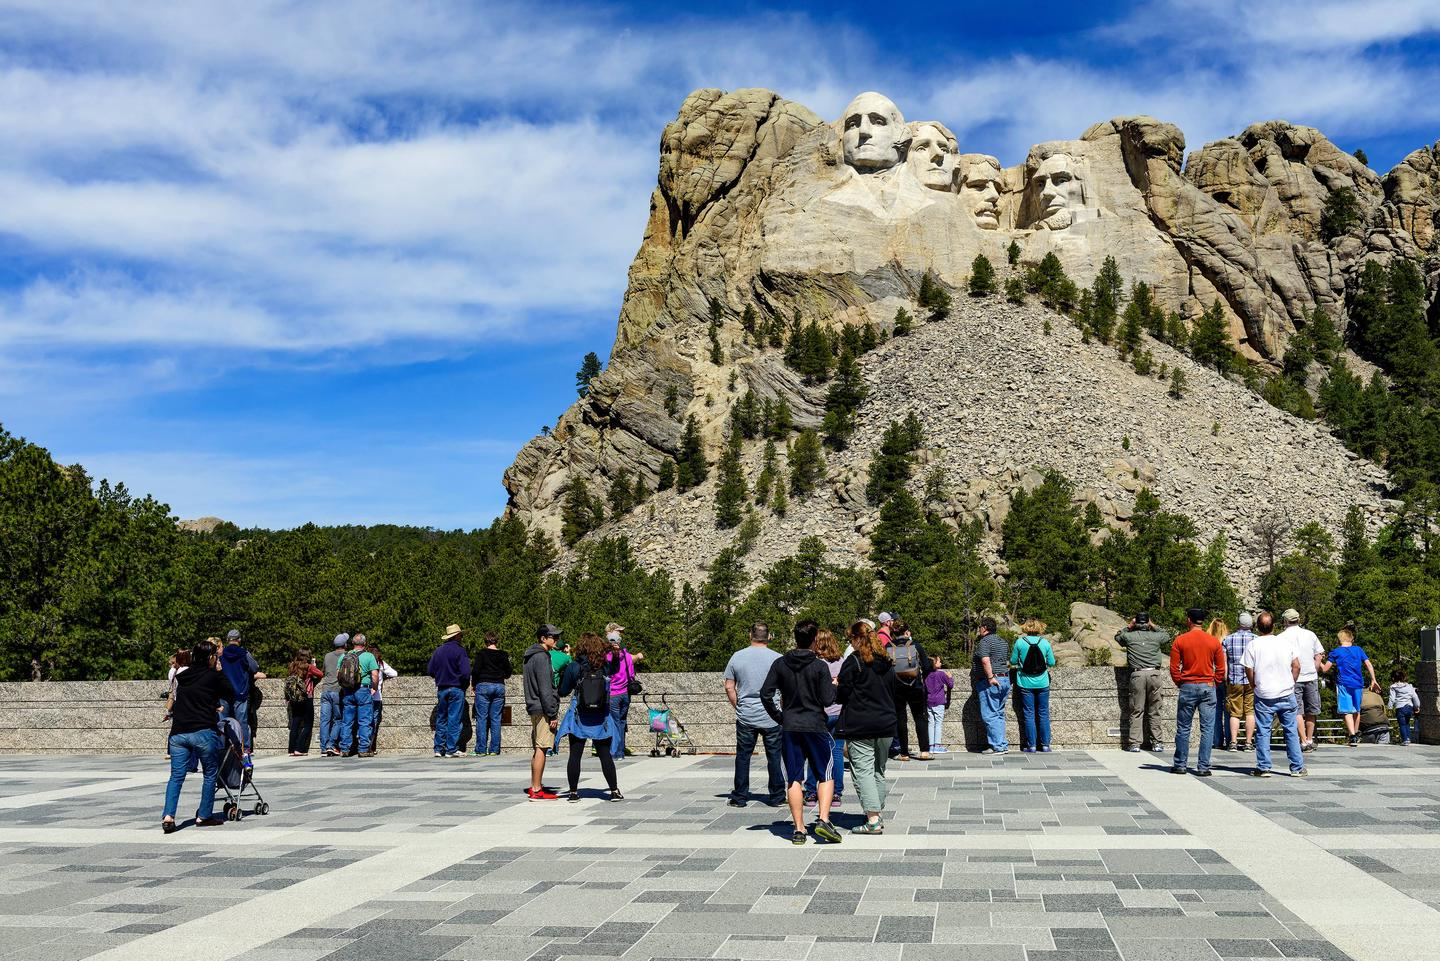 Mount Rushmore National Memorial visitorsVisitors at Mount Rushmore National Memorial